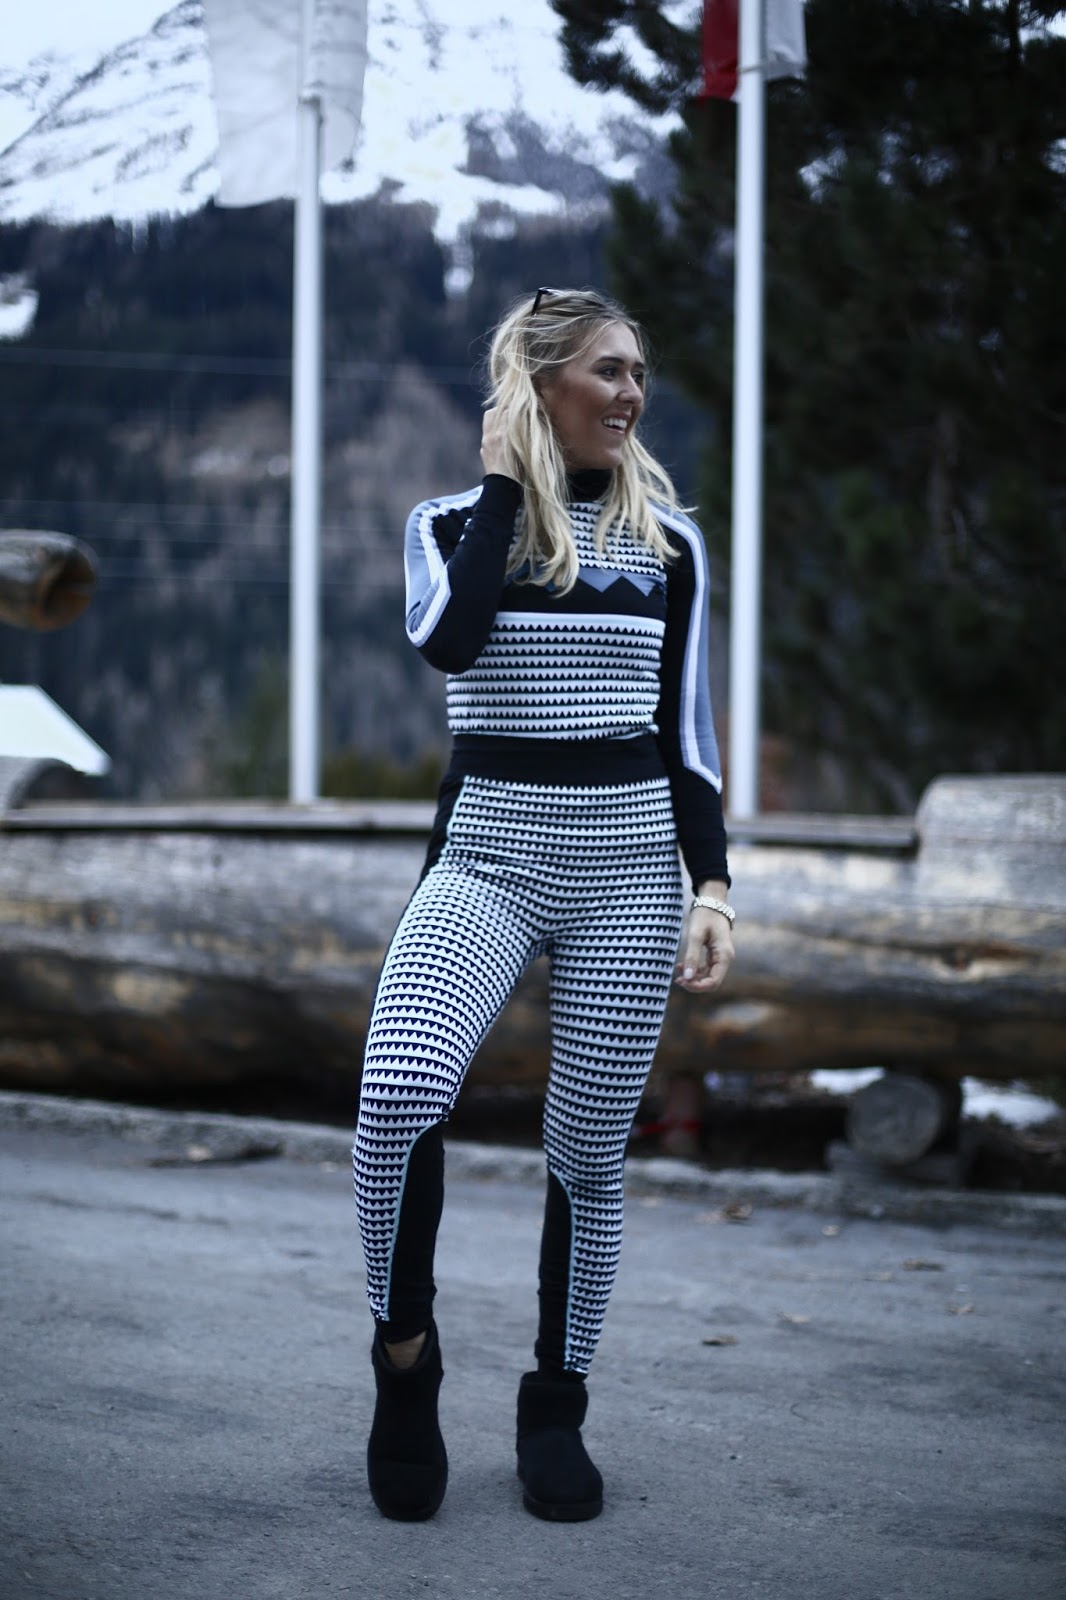 trendy fashionable ski kit